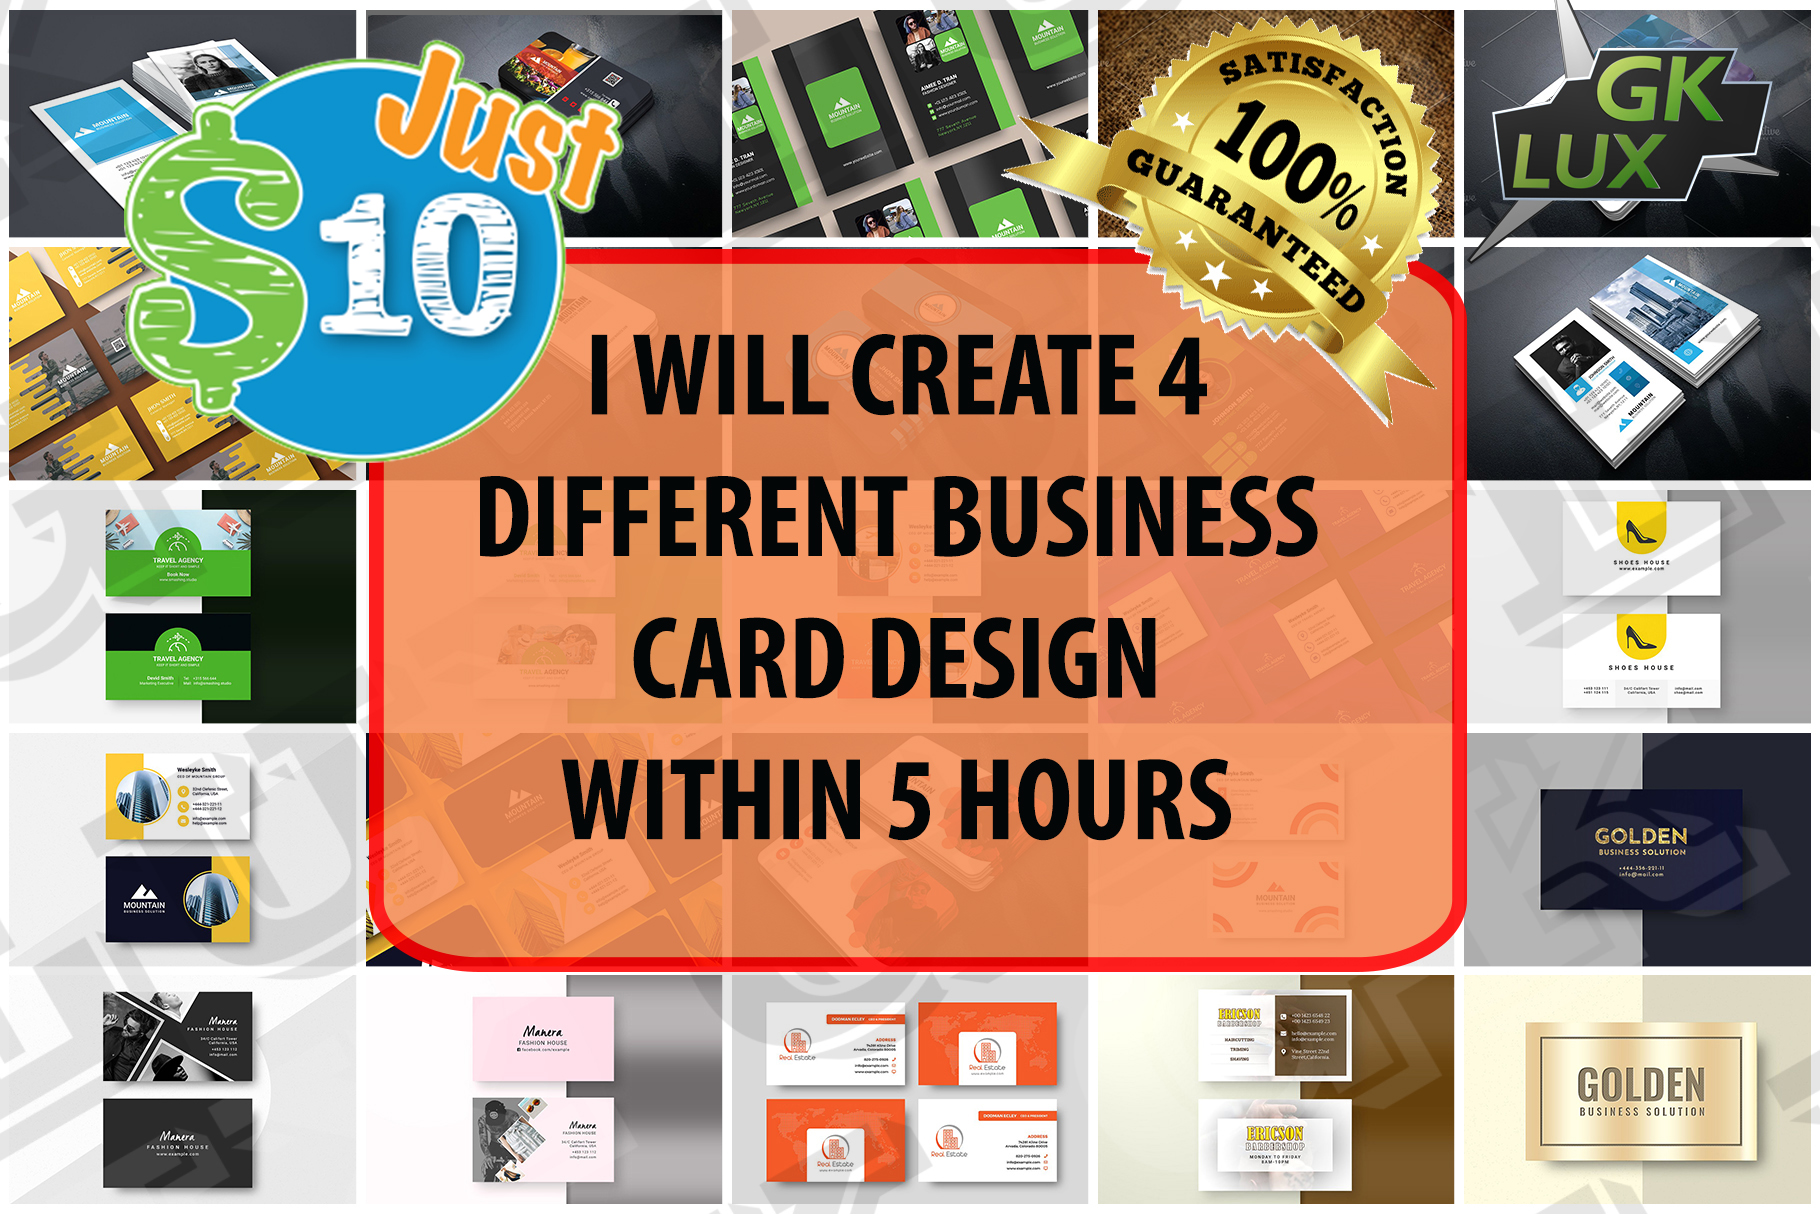 I Will create 4 different business card design within 5 hours